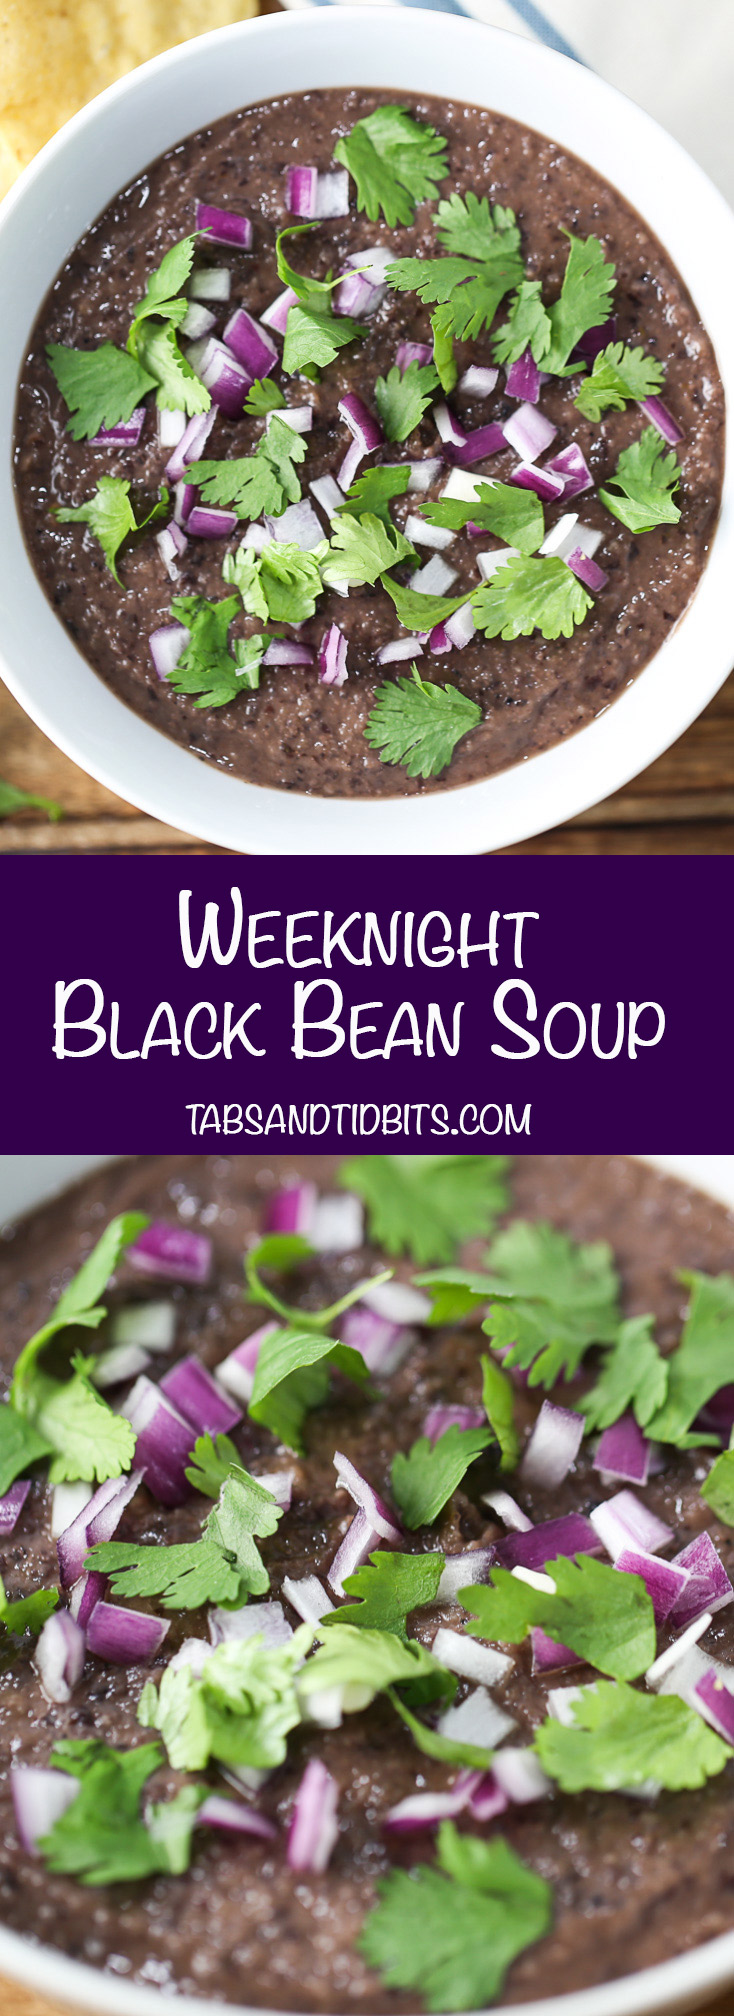 Weeknight Black Bean Soup -This Weeknight Black Bean Soup is one of the quickest soups to put together and cook in less than 20 minutes. Flavor is not sacrificed for this speedy soup!